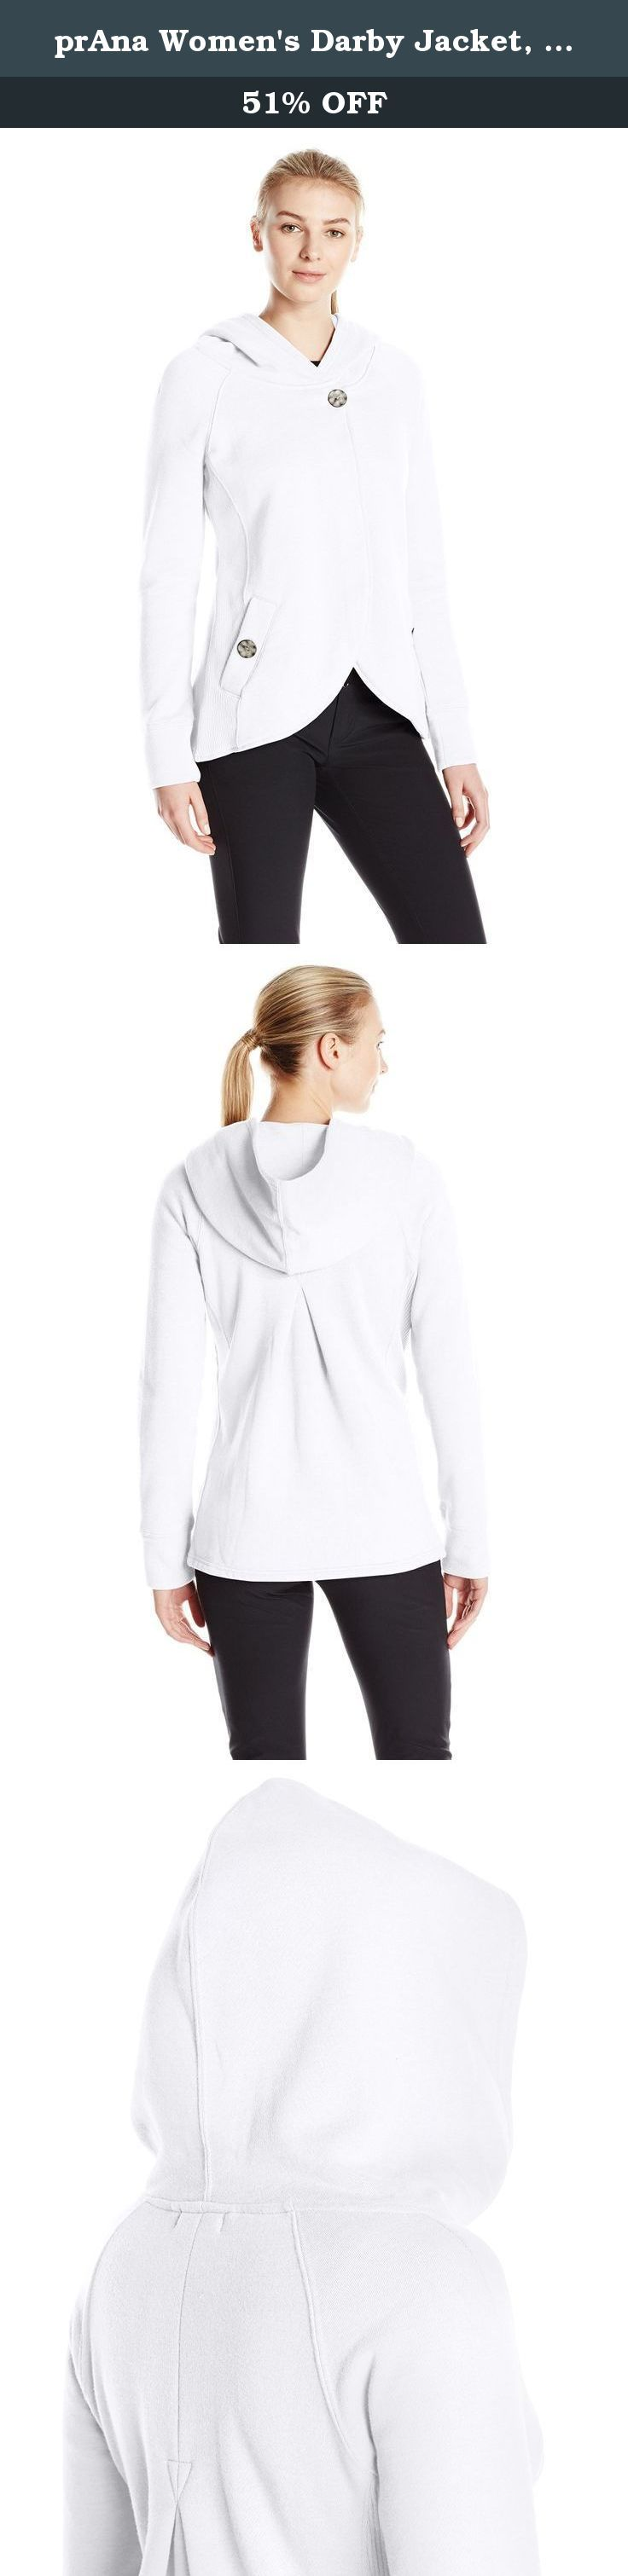 prAna Women's Darby Jacket, White, Large. The prAna Darby Jacket sports a stylish swing silhouette when fastened at its top button. Organic cotton blended fleece is a comfortable weight both day and night; put your hood up if it gets chilly.